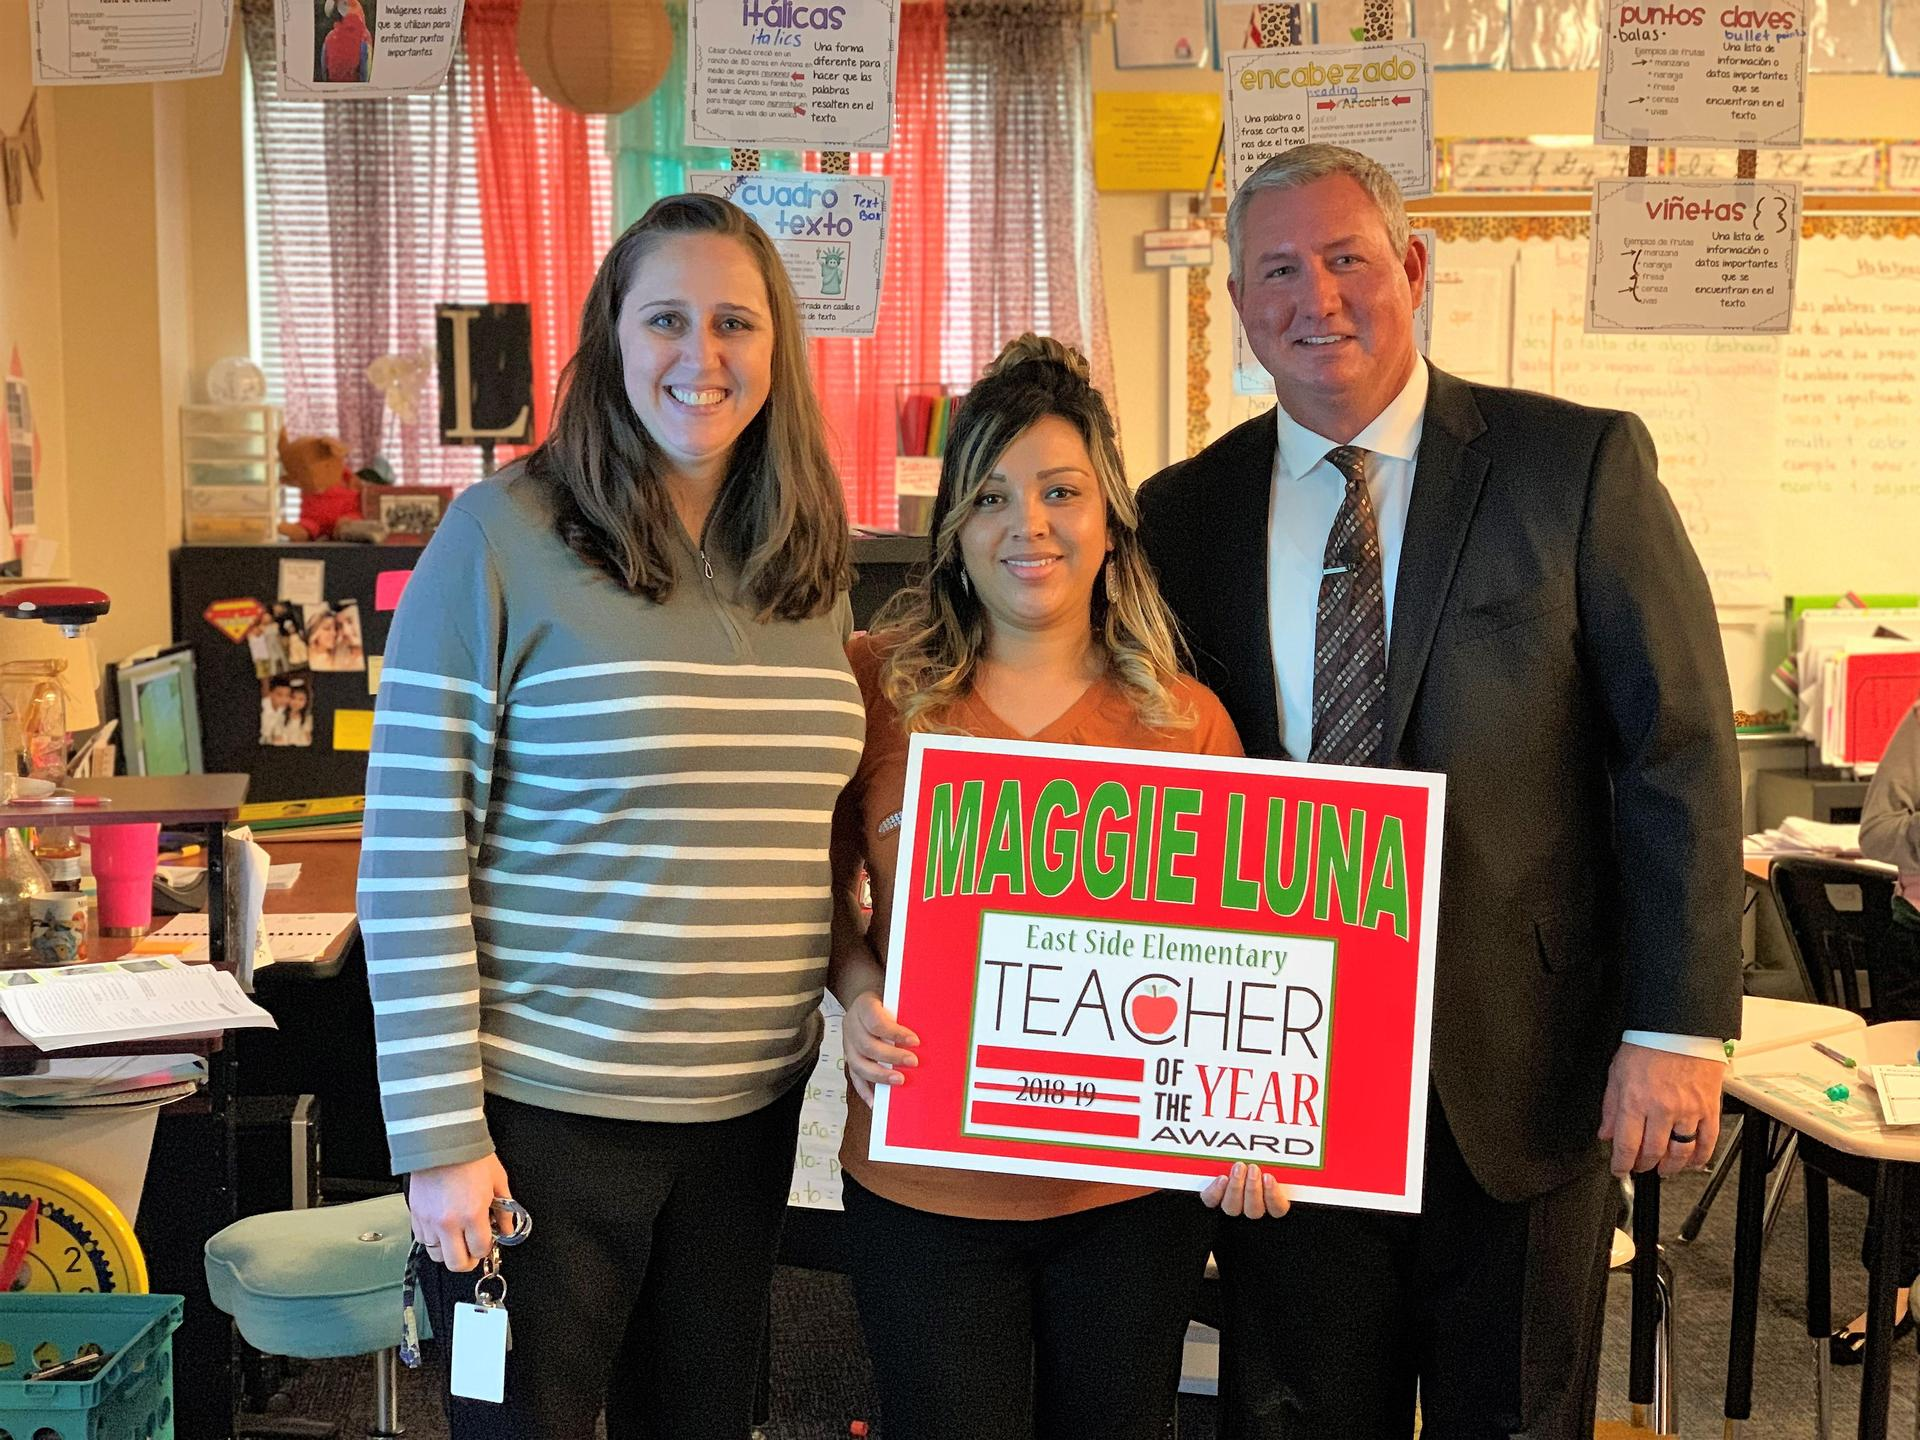 maggie luna with principal and superintendent